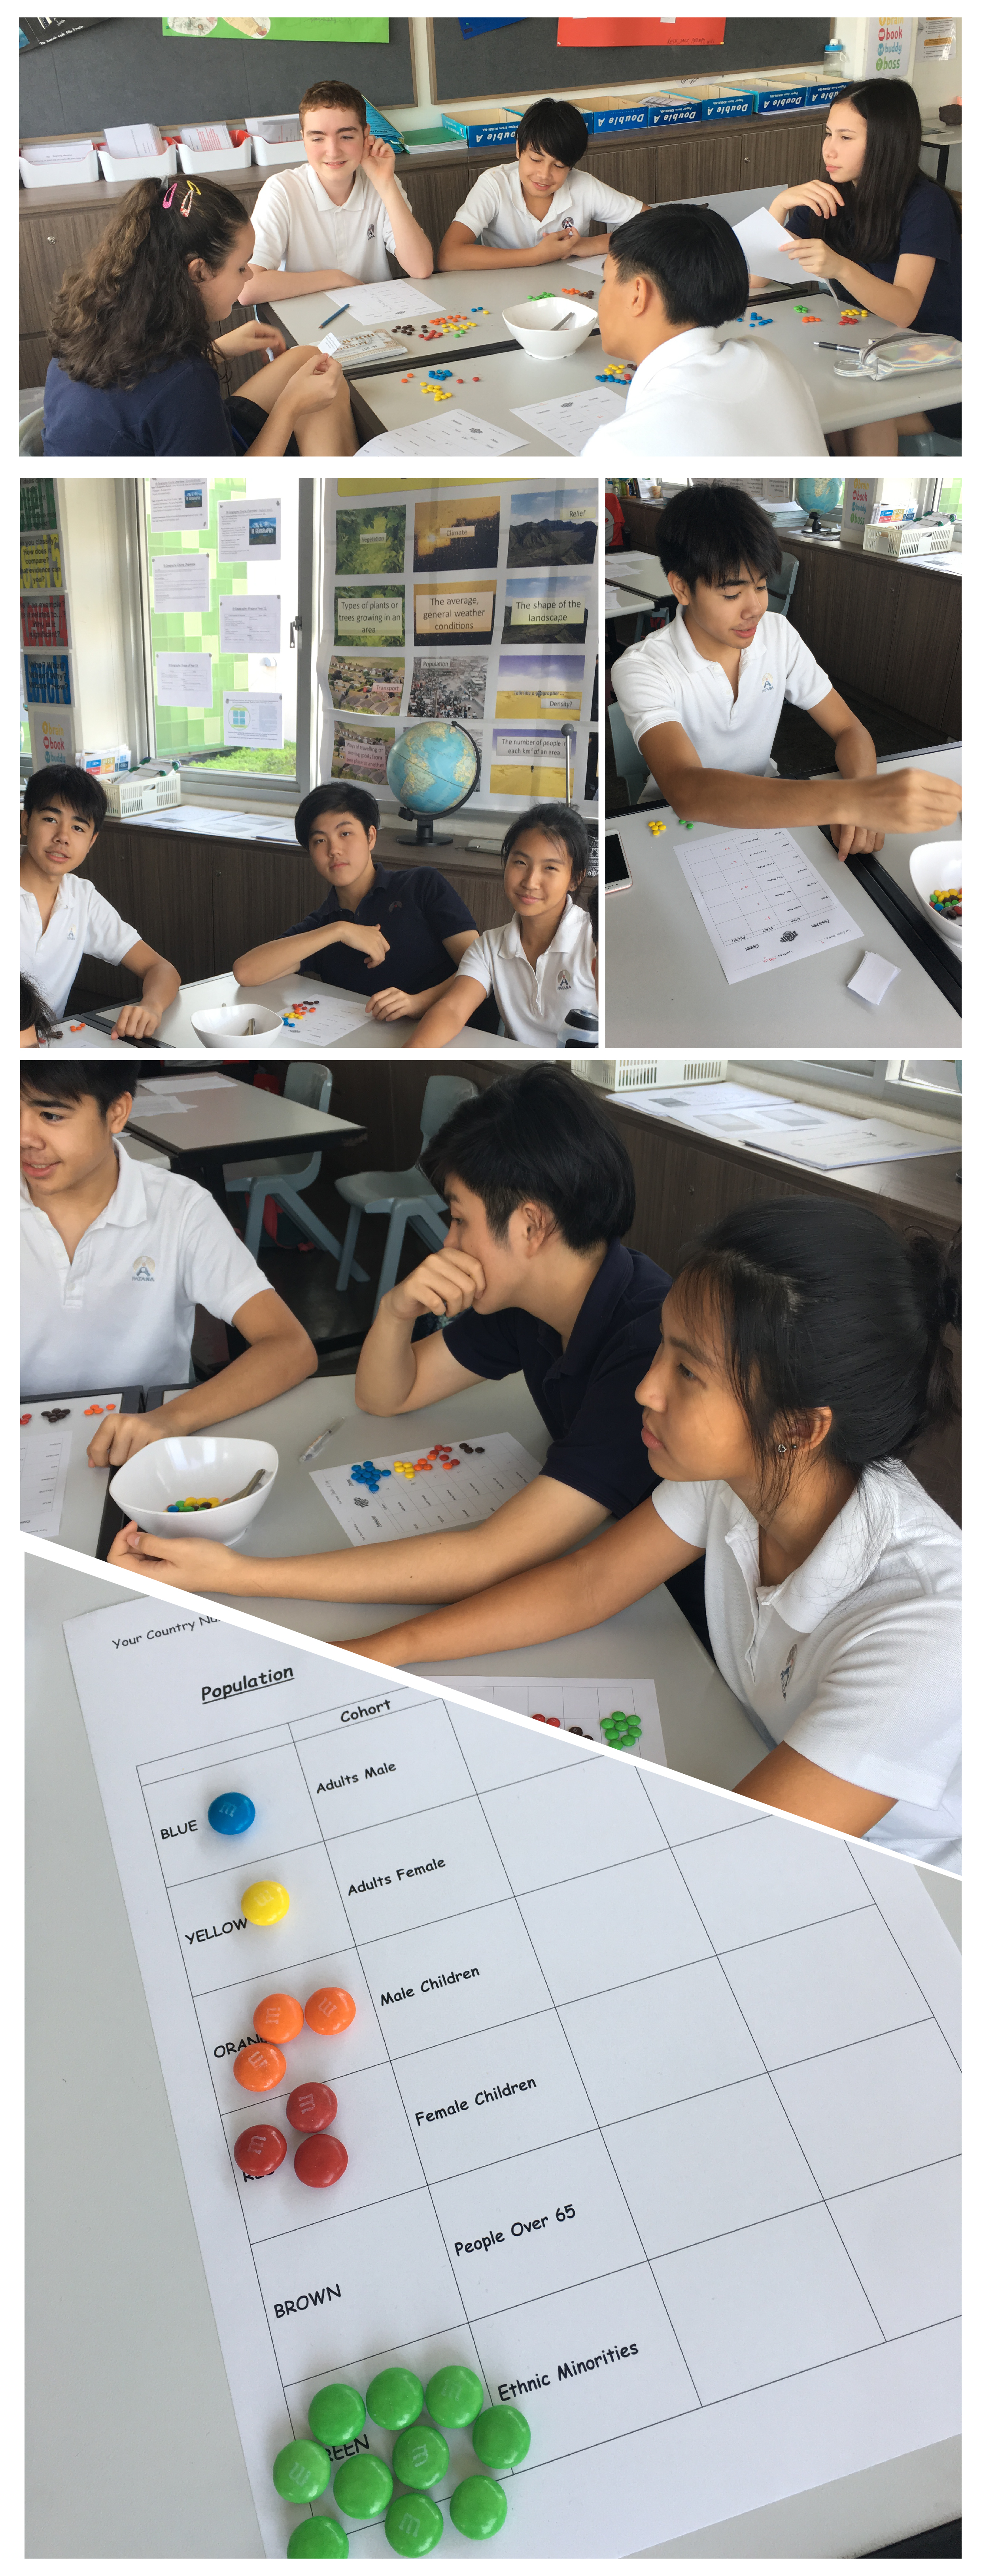 Year 10 Geography students study population change using M&Ms